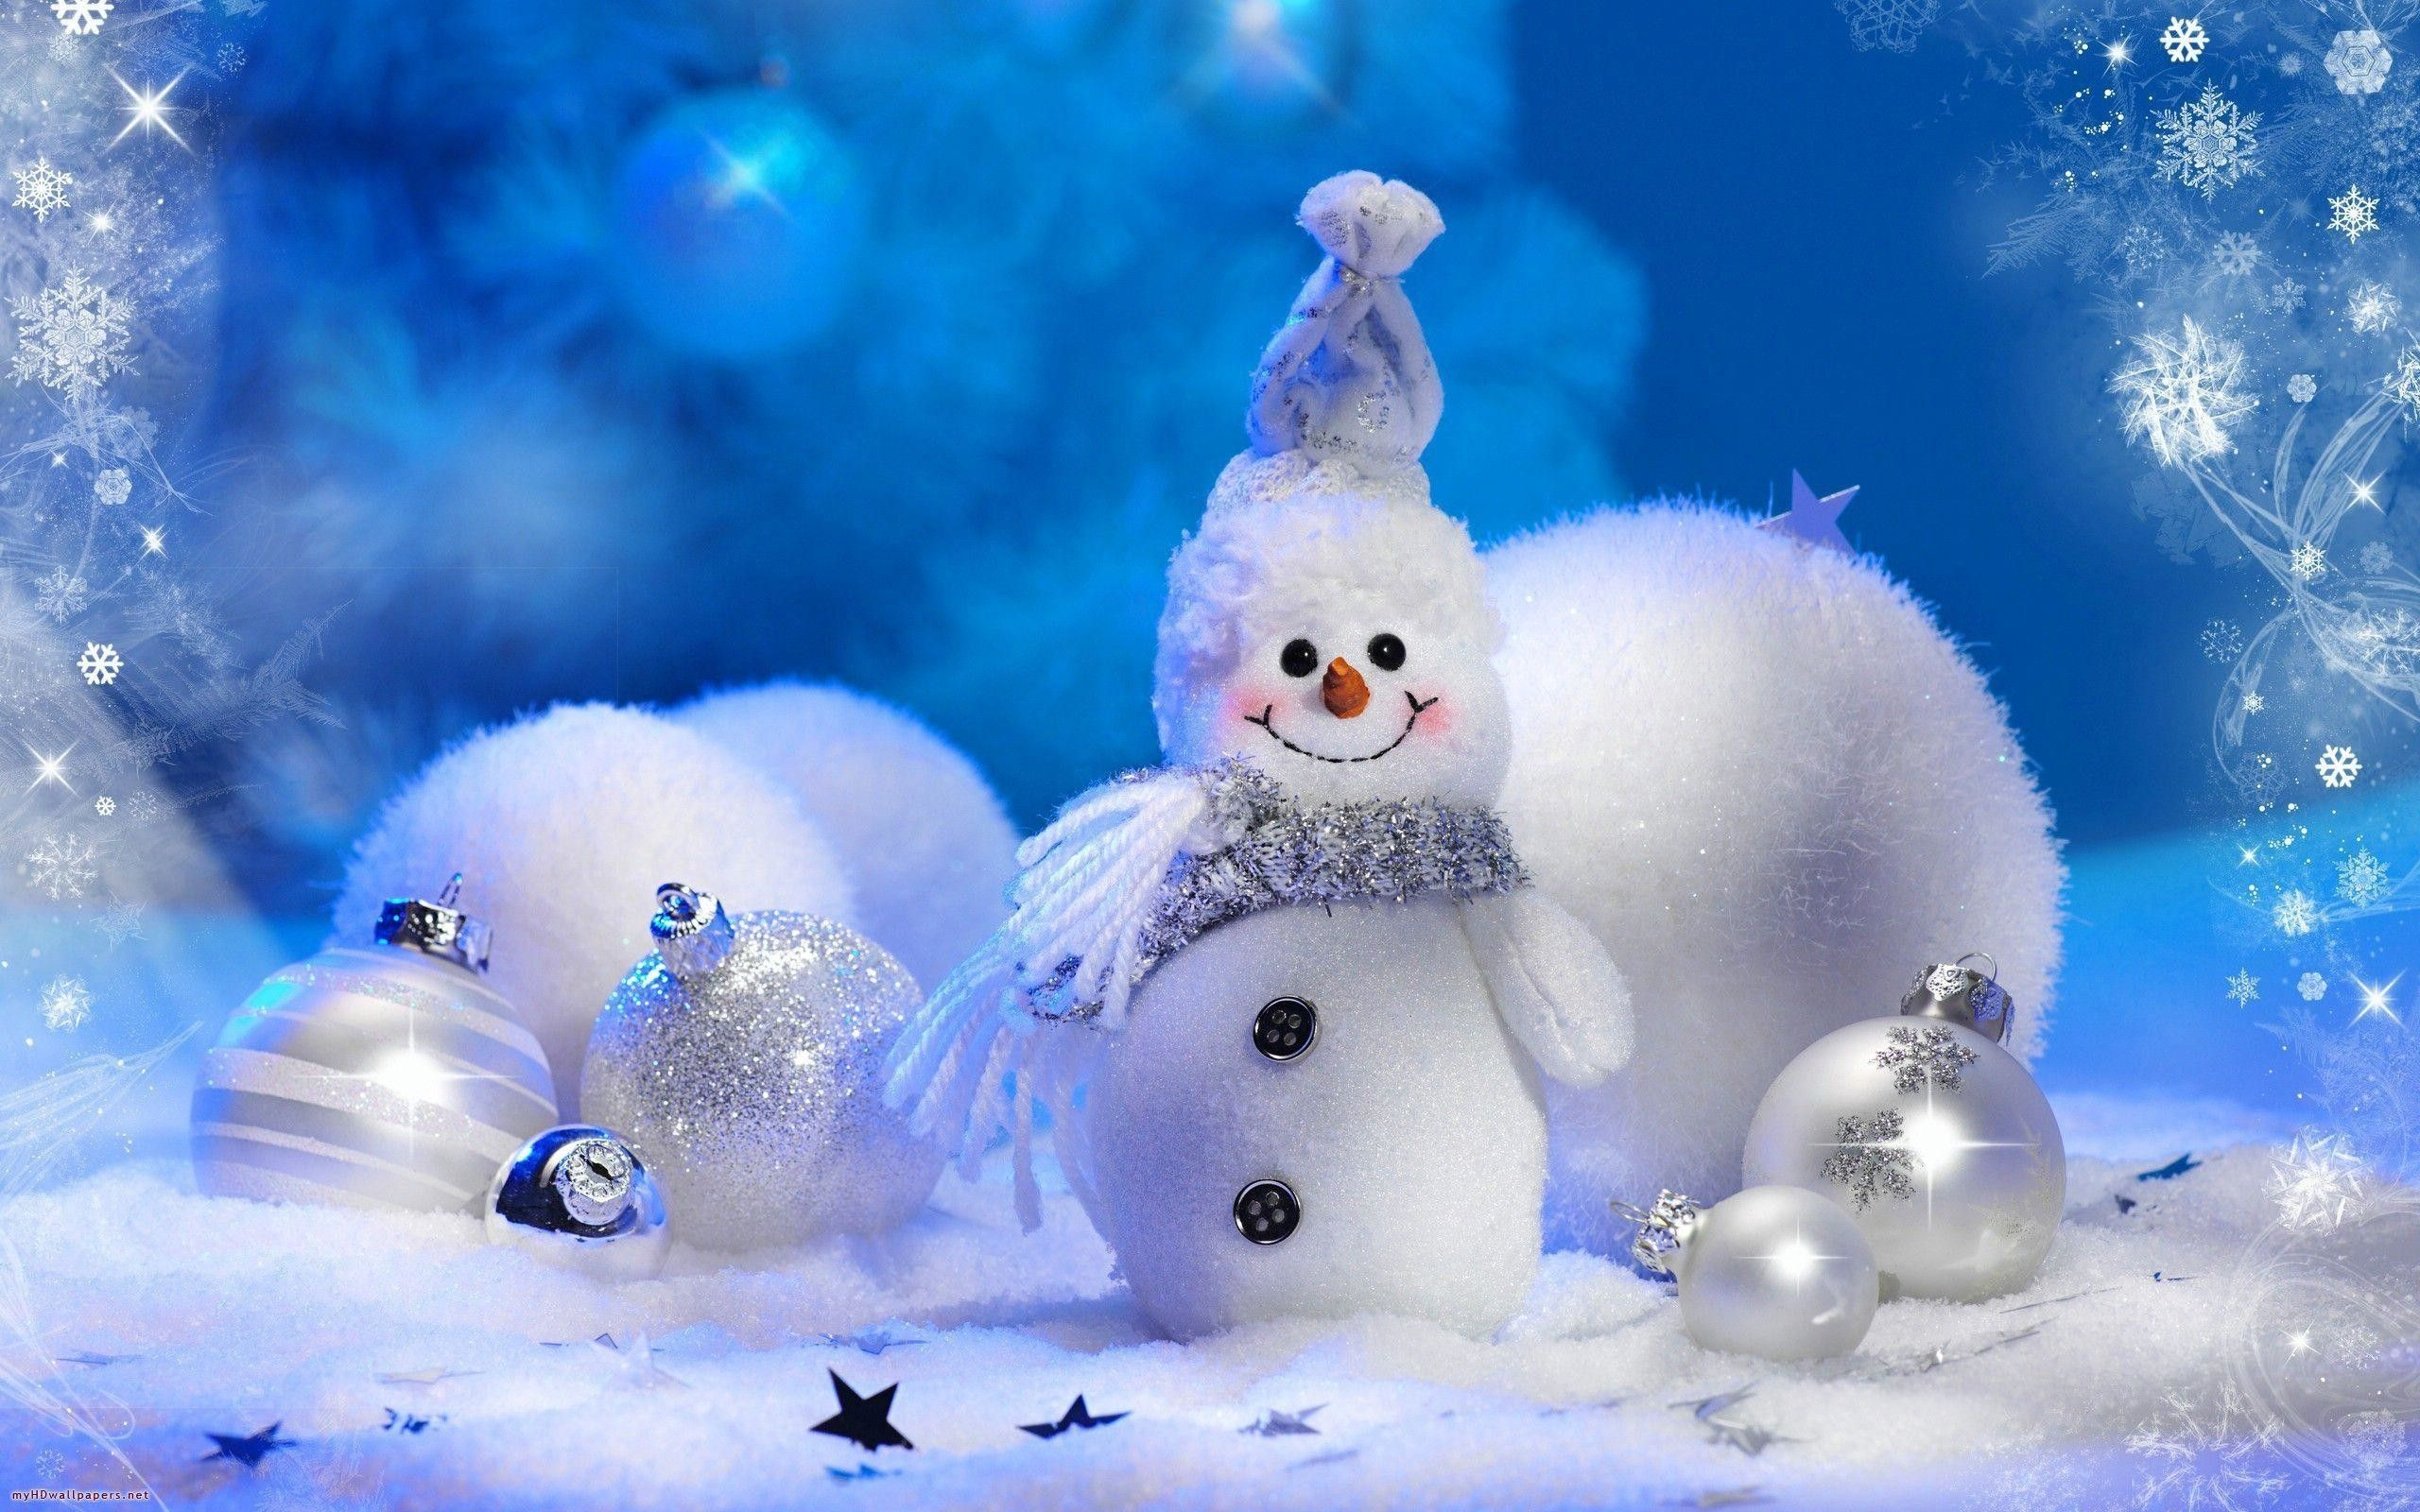 Cute Christmas Wallpapers 63 Pictures Snowman Wallpaper Merry Christmas Pictures Cute Christmas Wallpaper